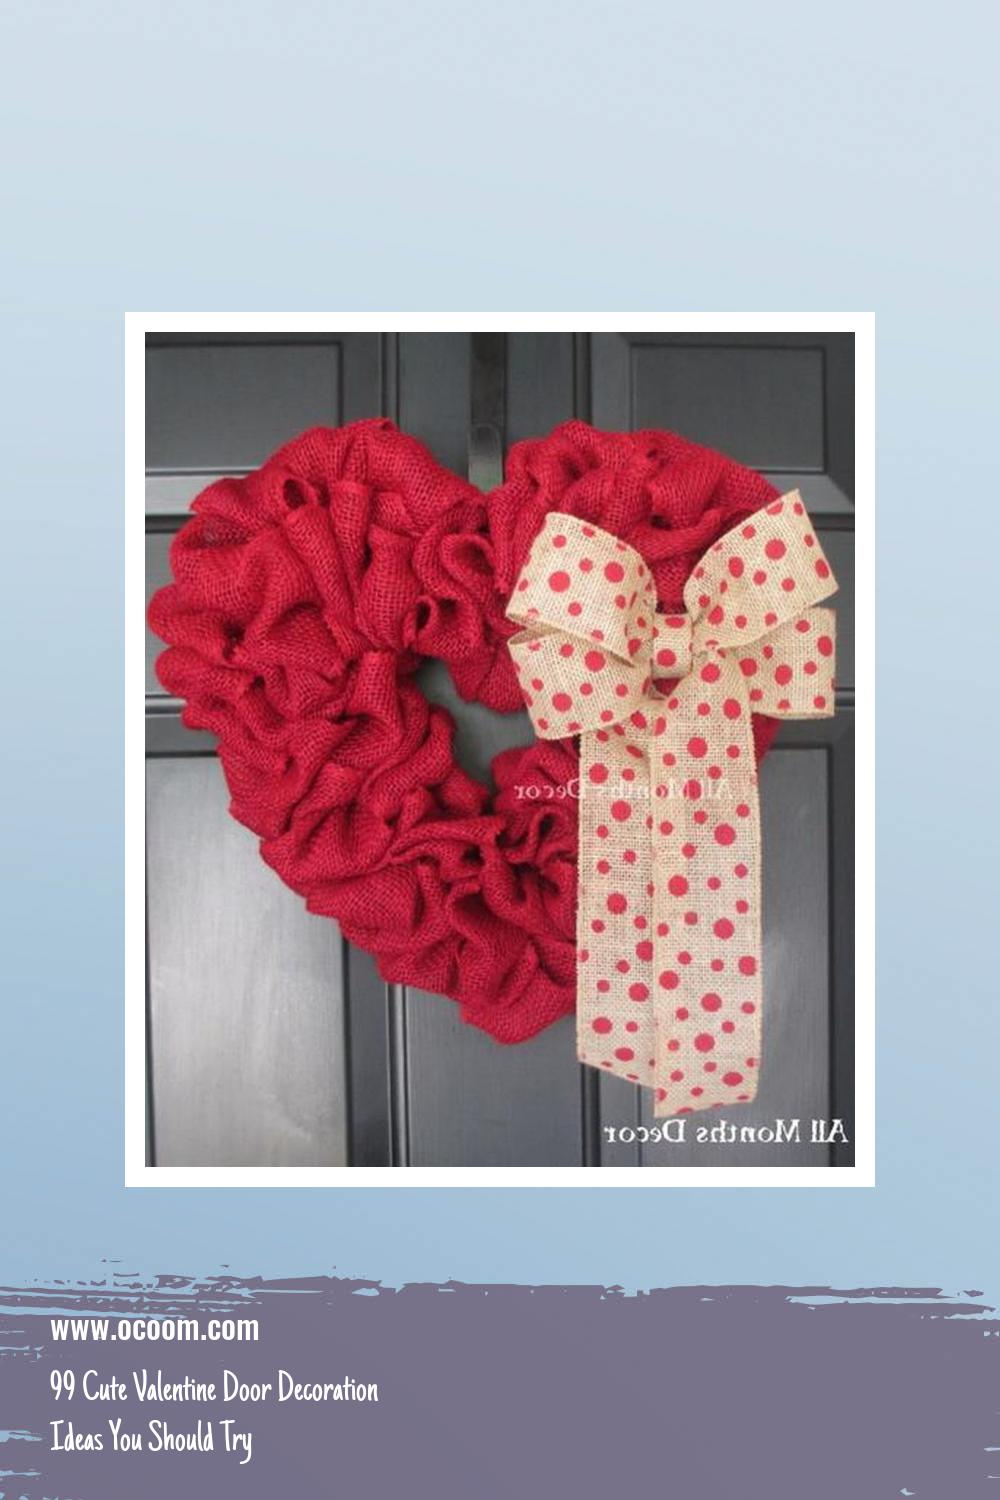 99 Cute Valentine Door Decoration Ideas You Should Try 28